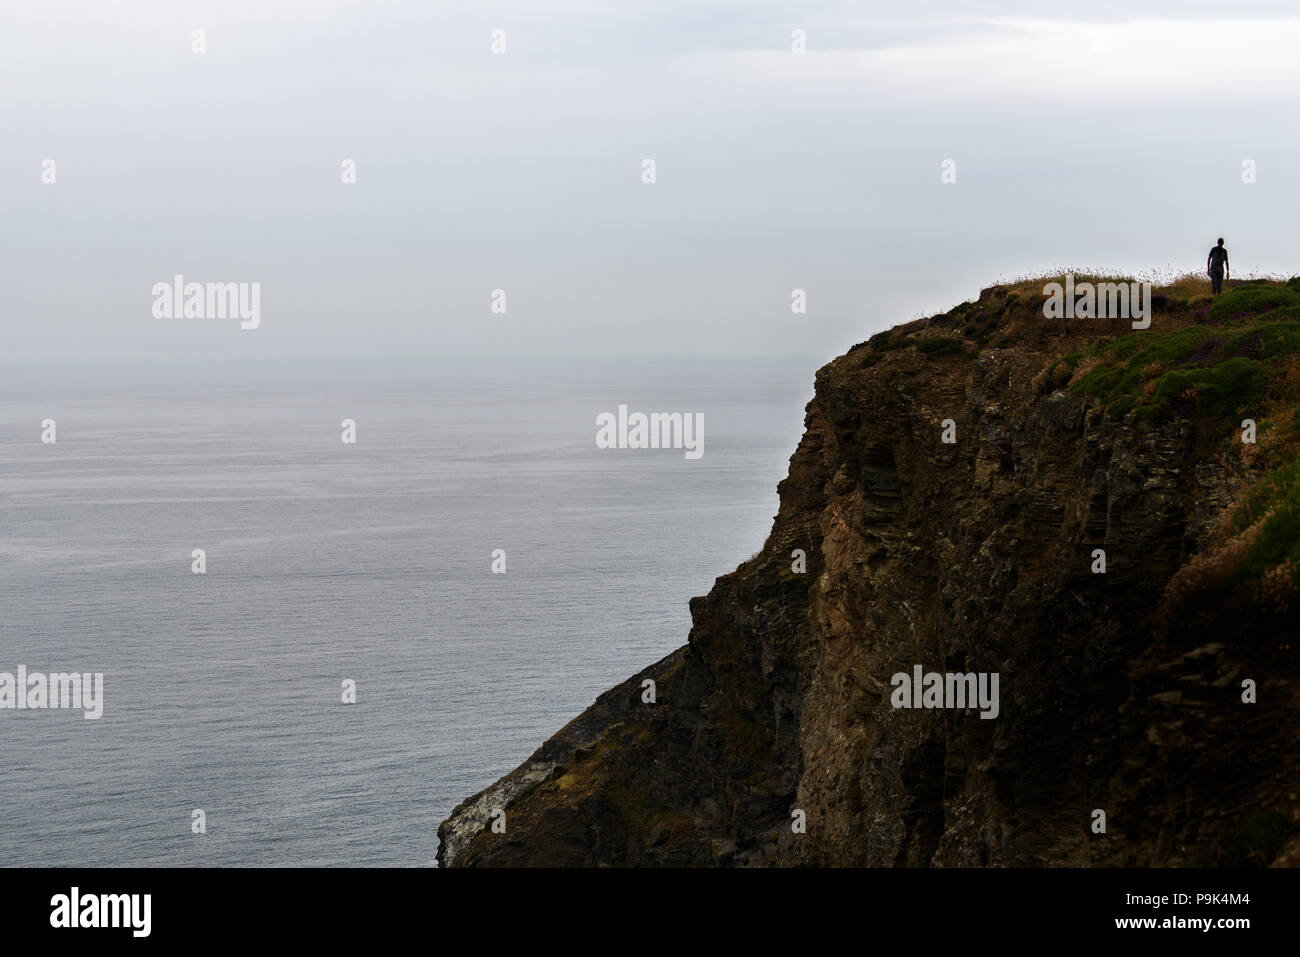 Atlantic ocean on a calm day as seen from the South West Coast path in Cornwall, England - Stock Image